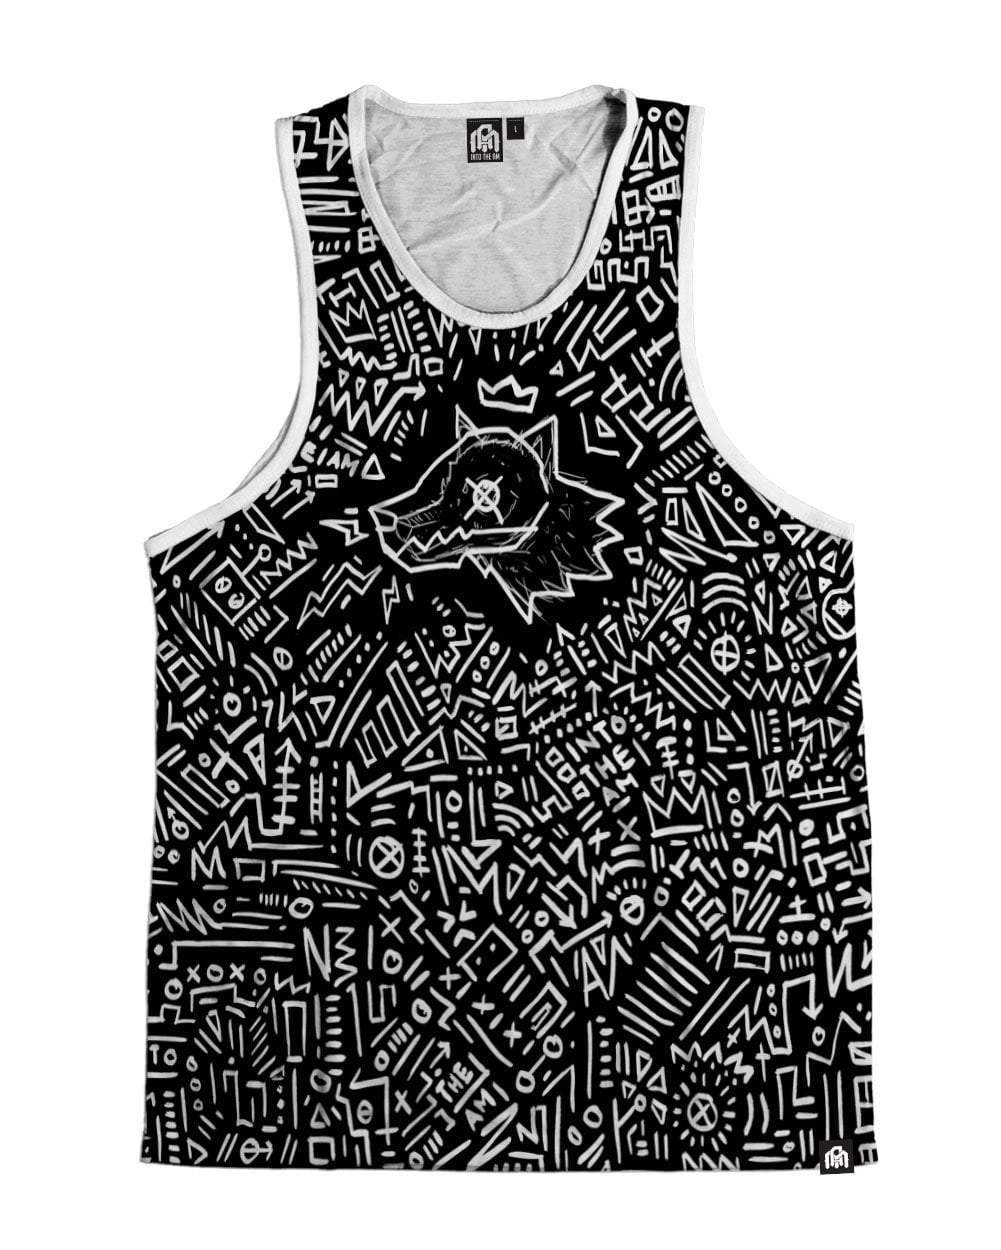 Play Nice Men's Tank Top-Front